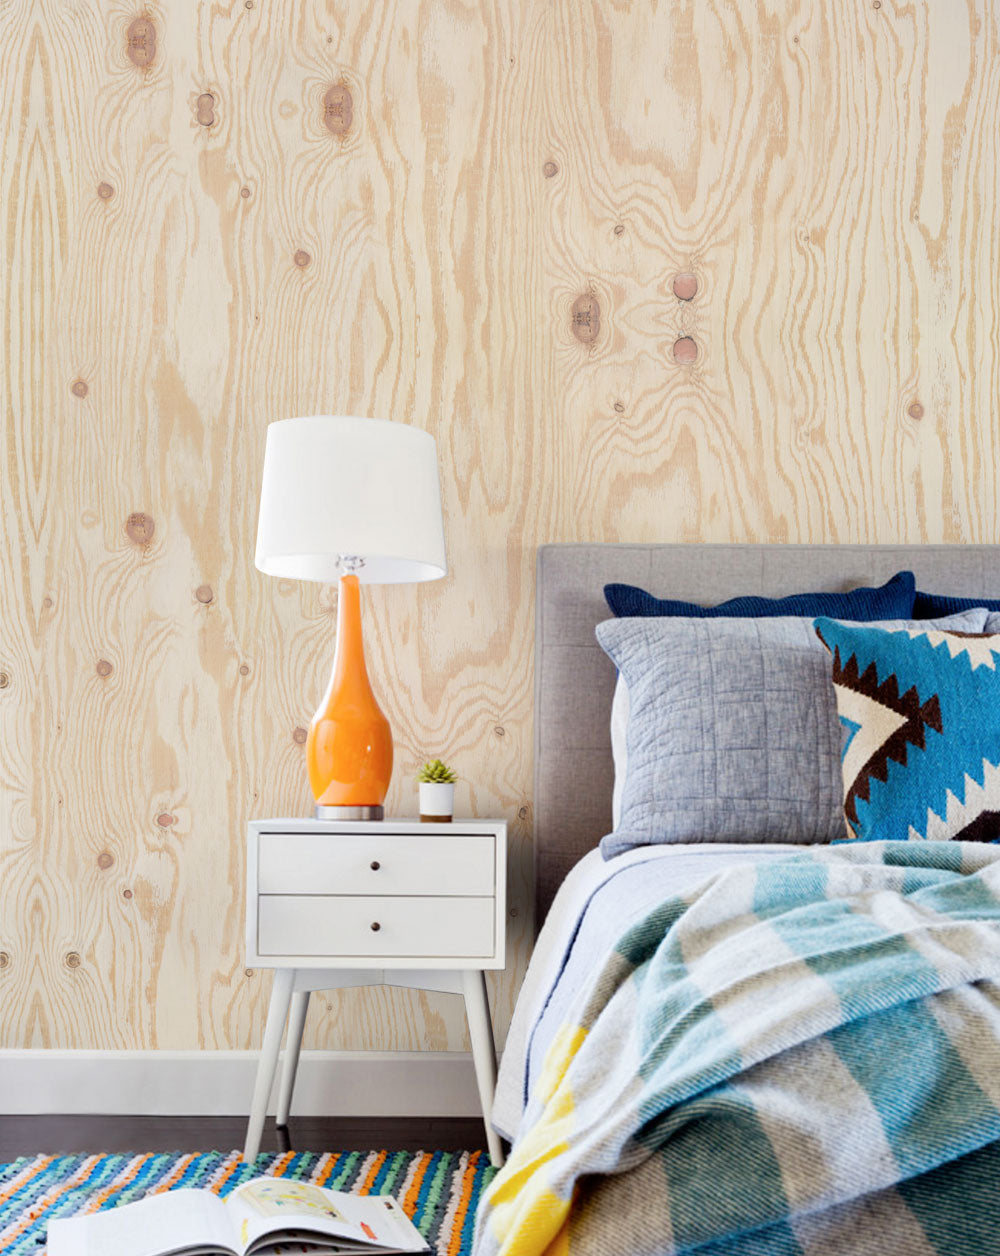 Plywood Accent Mural Wall Art Wallpaper - Peel and Stick